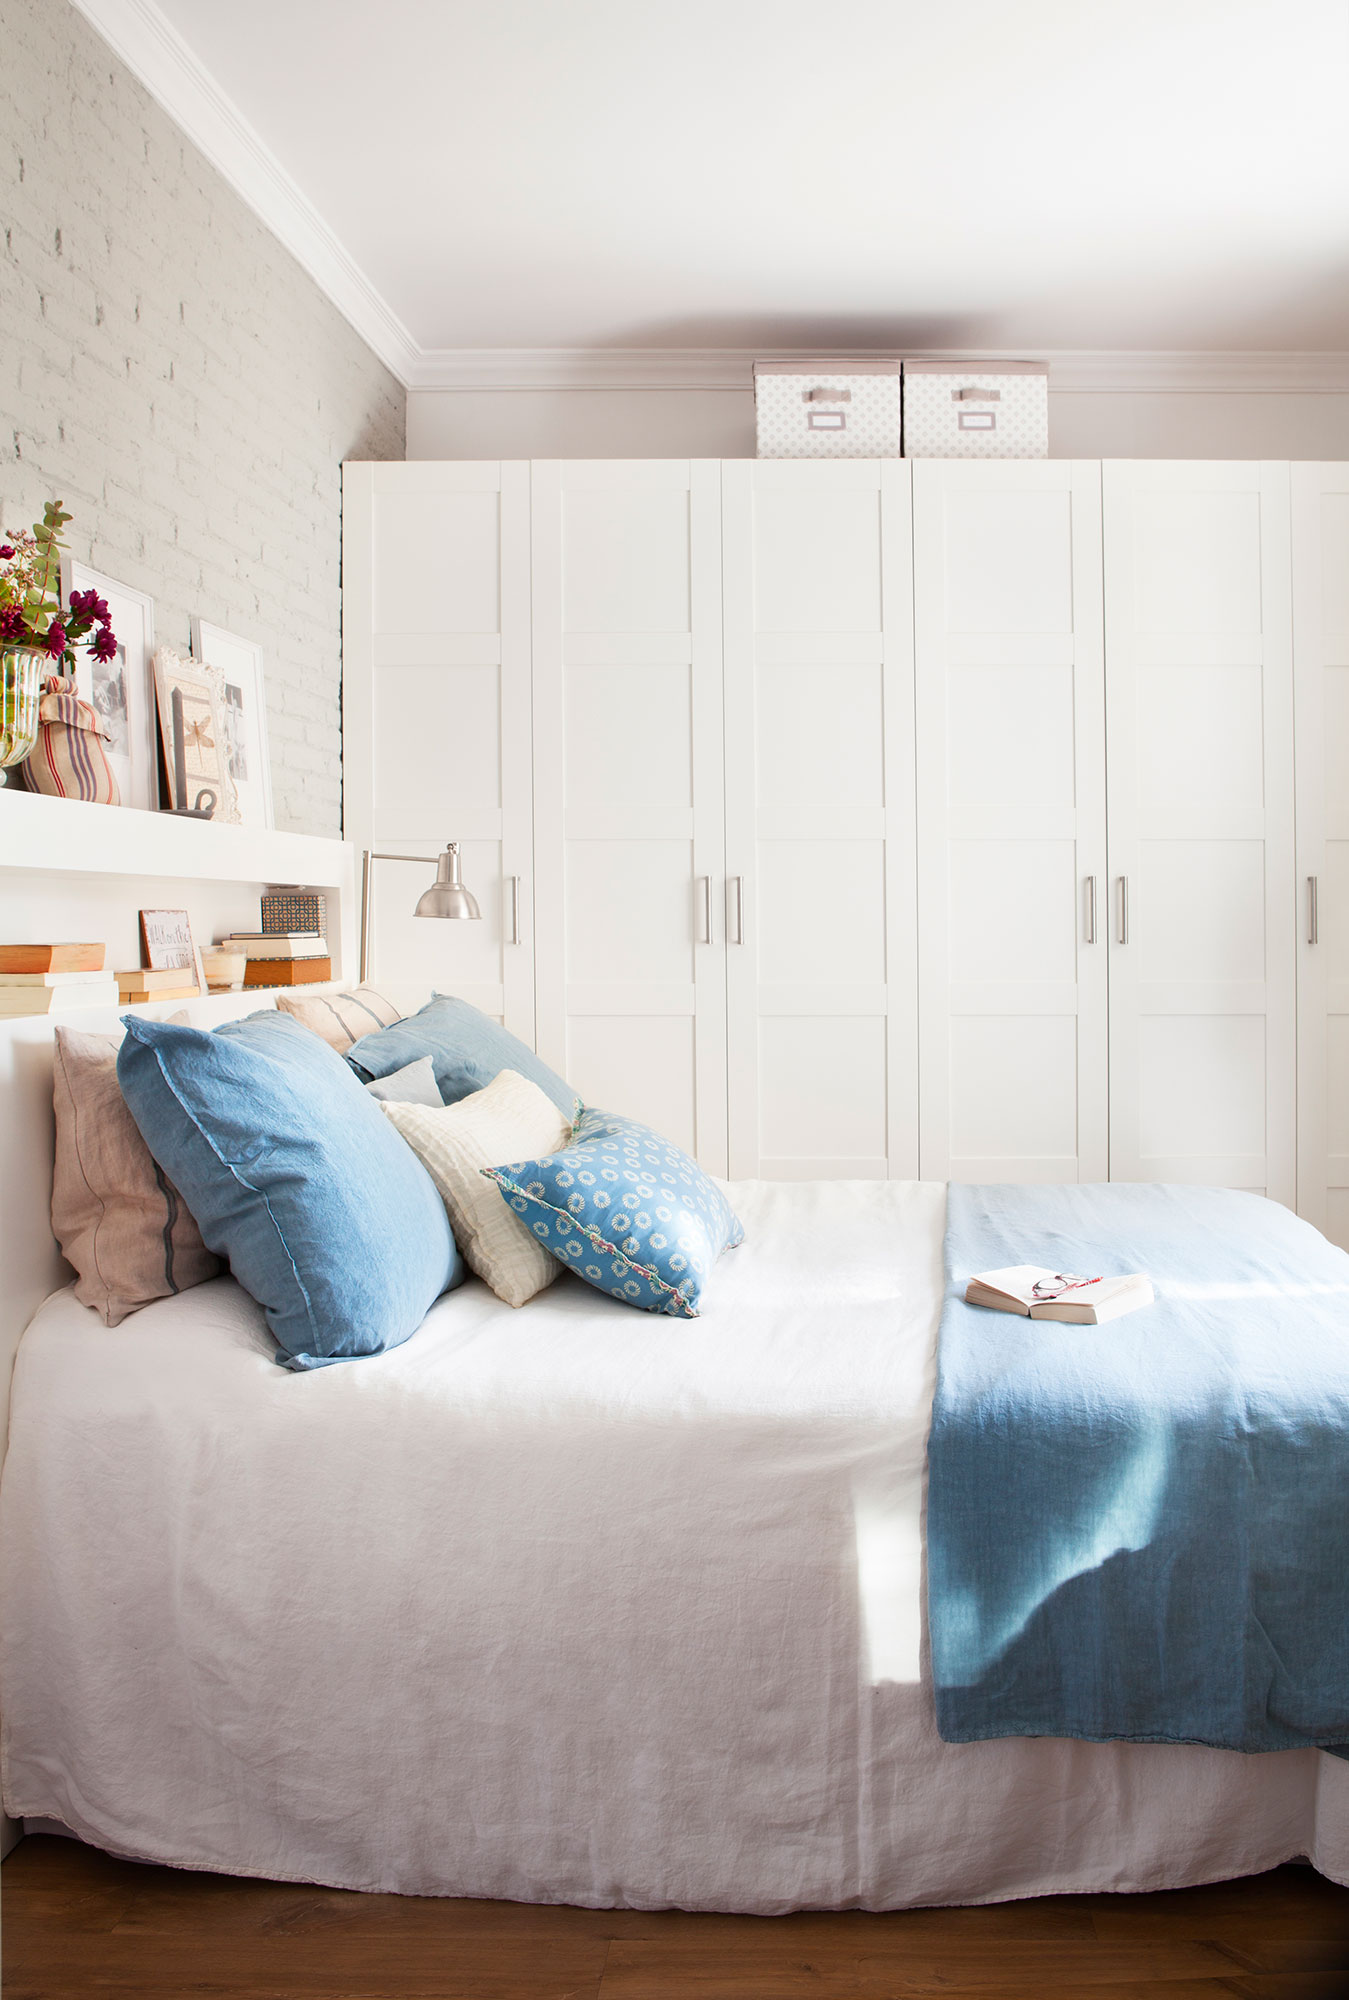 Compartir piso 10 ideas low cost para decorar tu dormitorio for Dormitorio gris y blanco